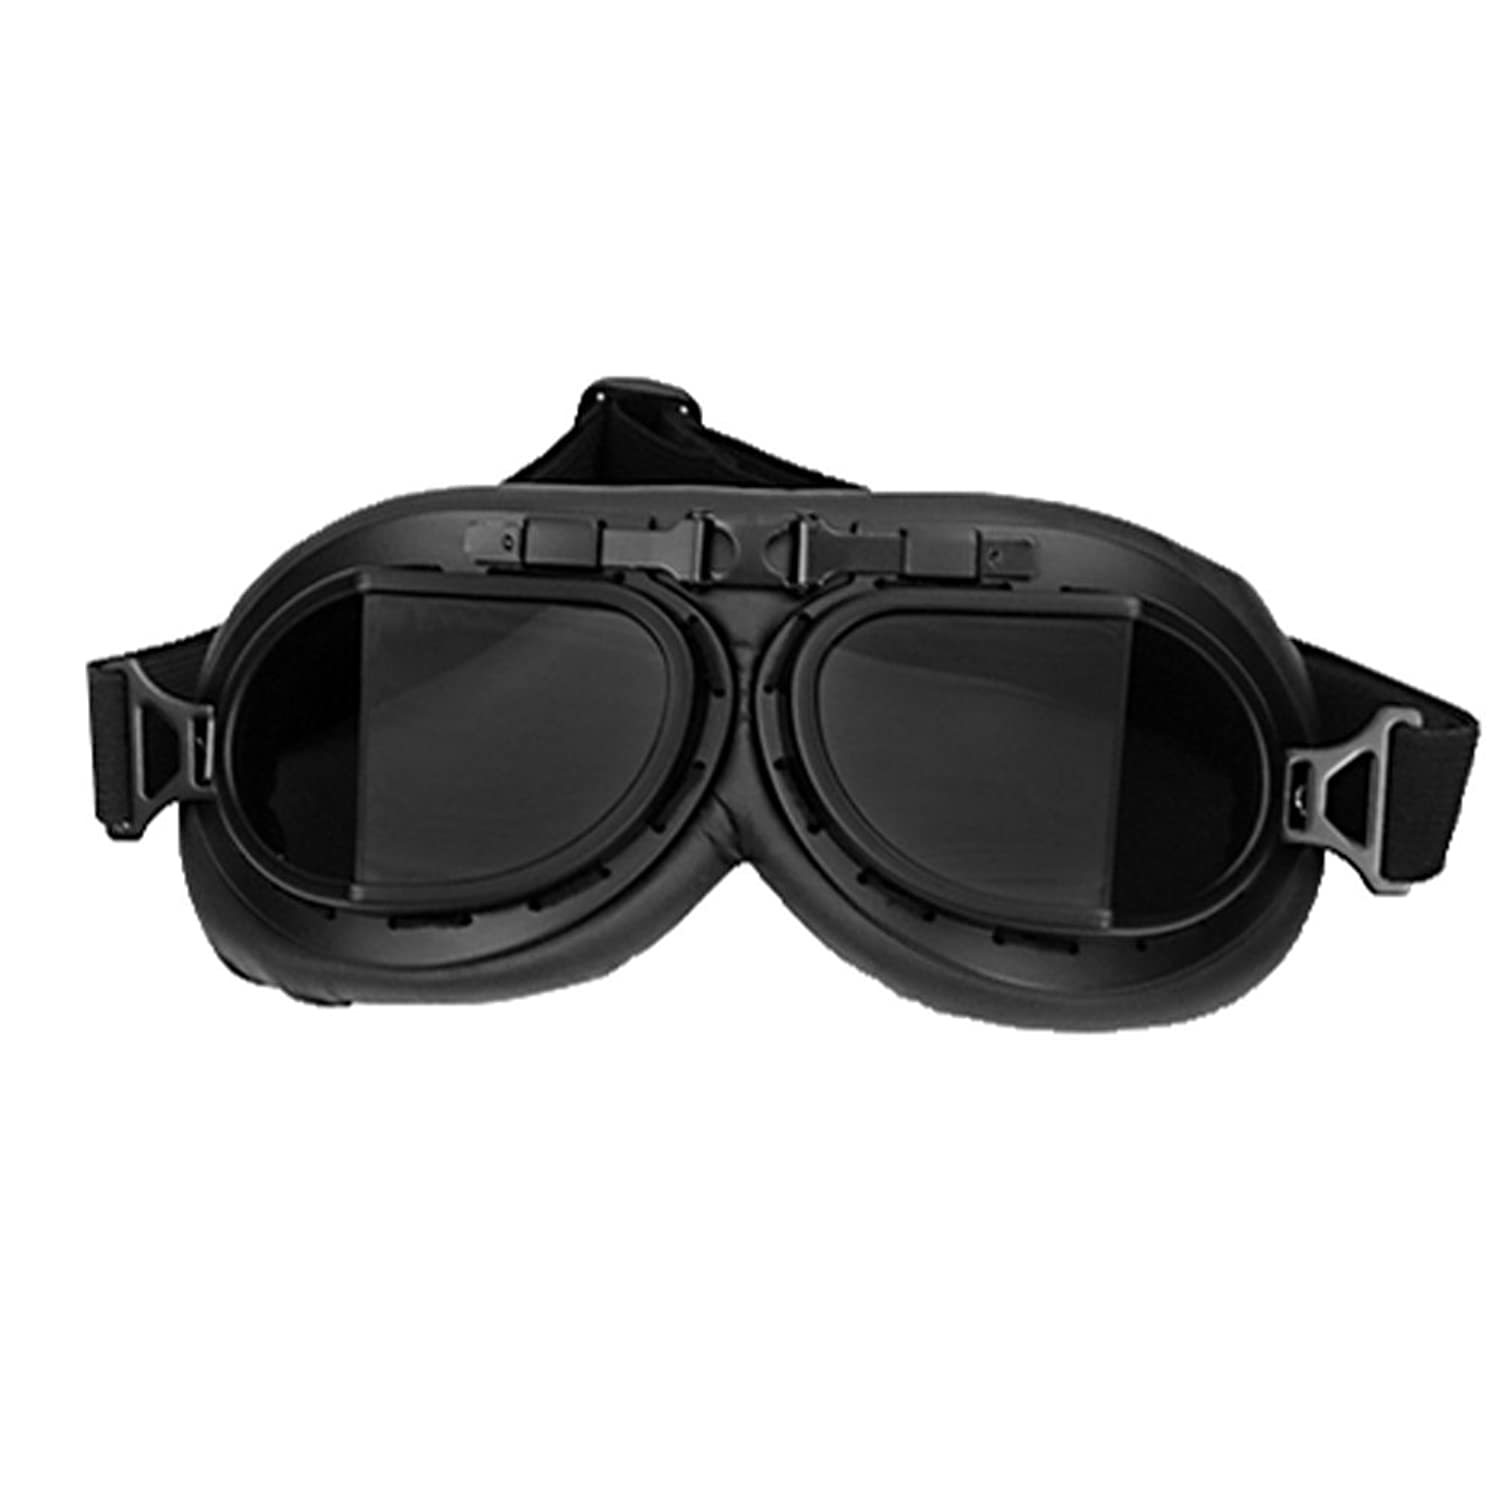 xcoser MAD-Max Nux Goggles Vintage Anti-Dust Motorcycle Glasses Adjustable Strap